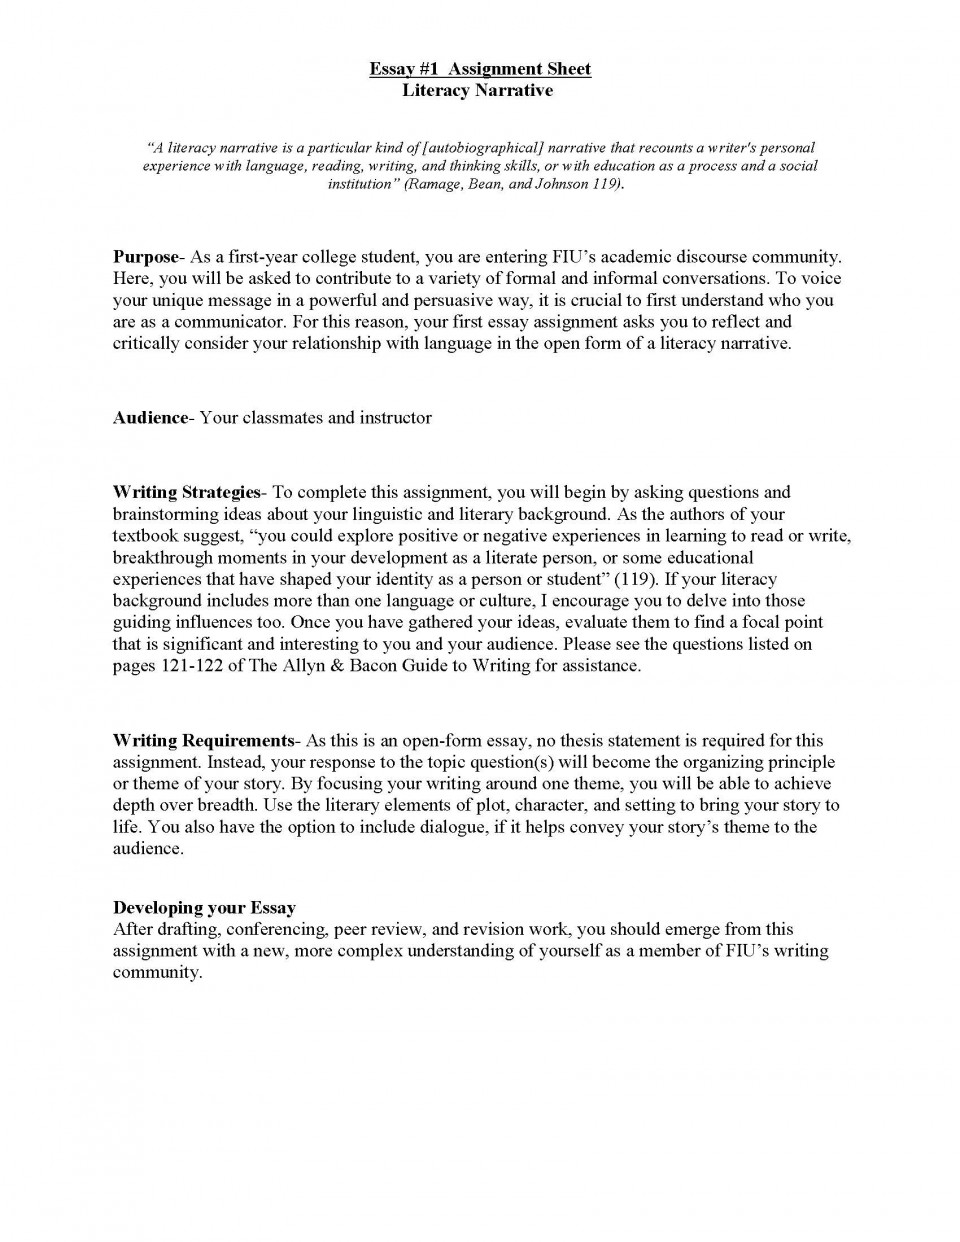 013 Essay Example Literacy Narrative Unitssignment Spring 2012 Page 1 Writing Amazing A Pdf Sample High School Personal Outline 960